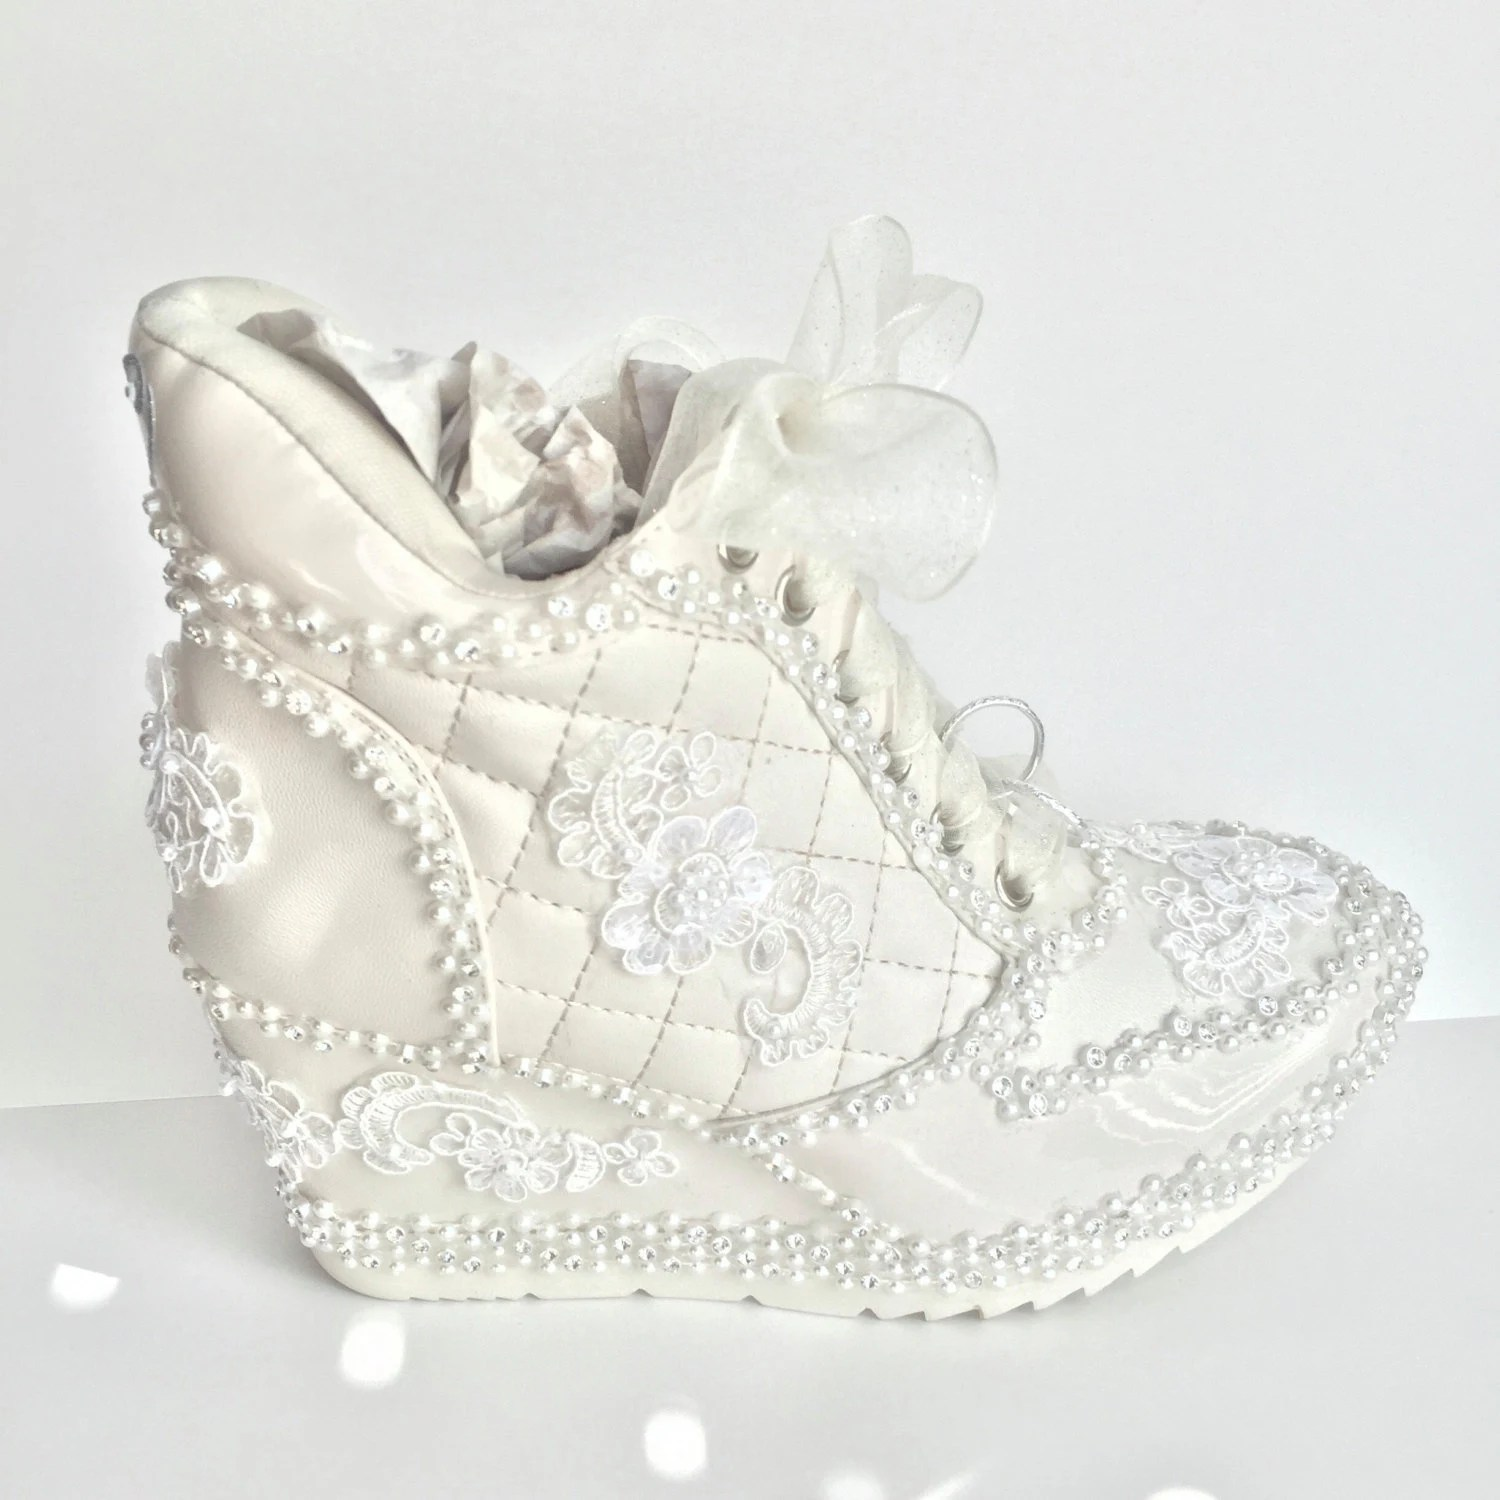 weddingshoeheaven wedding wedge shoes Ivory Wedding Shoes Sneakers Wedge Heeled Bridal Tennis Shoes in Ivory Champagne